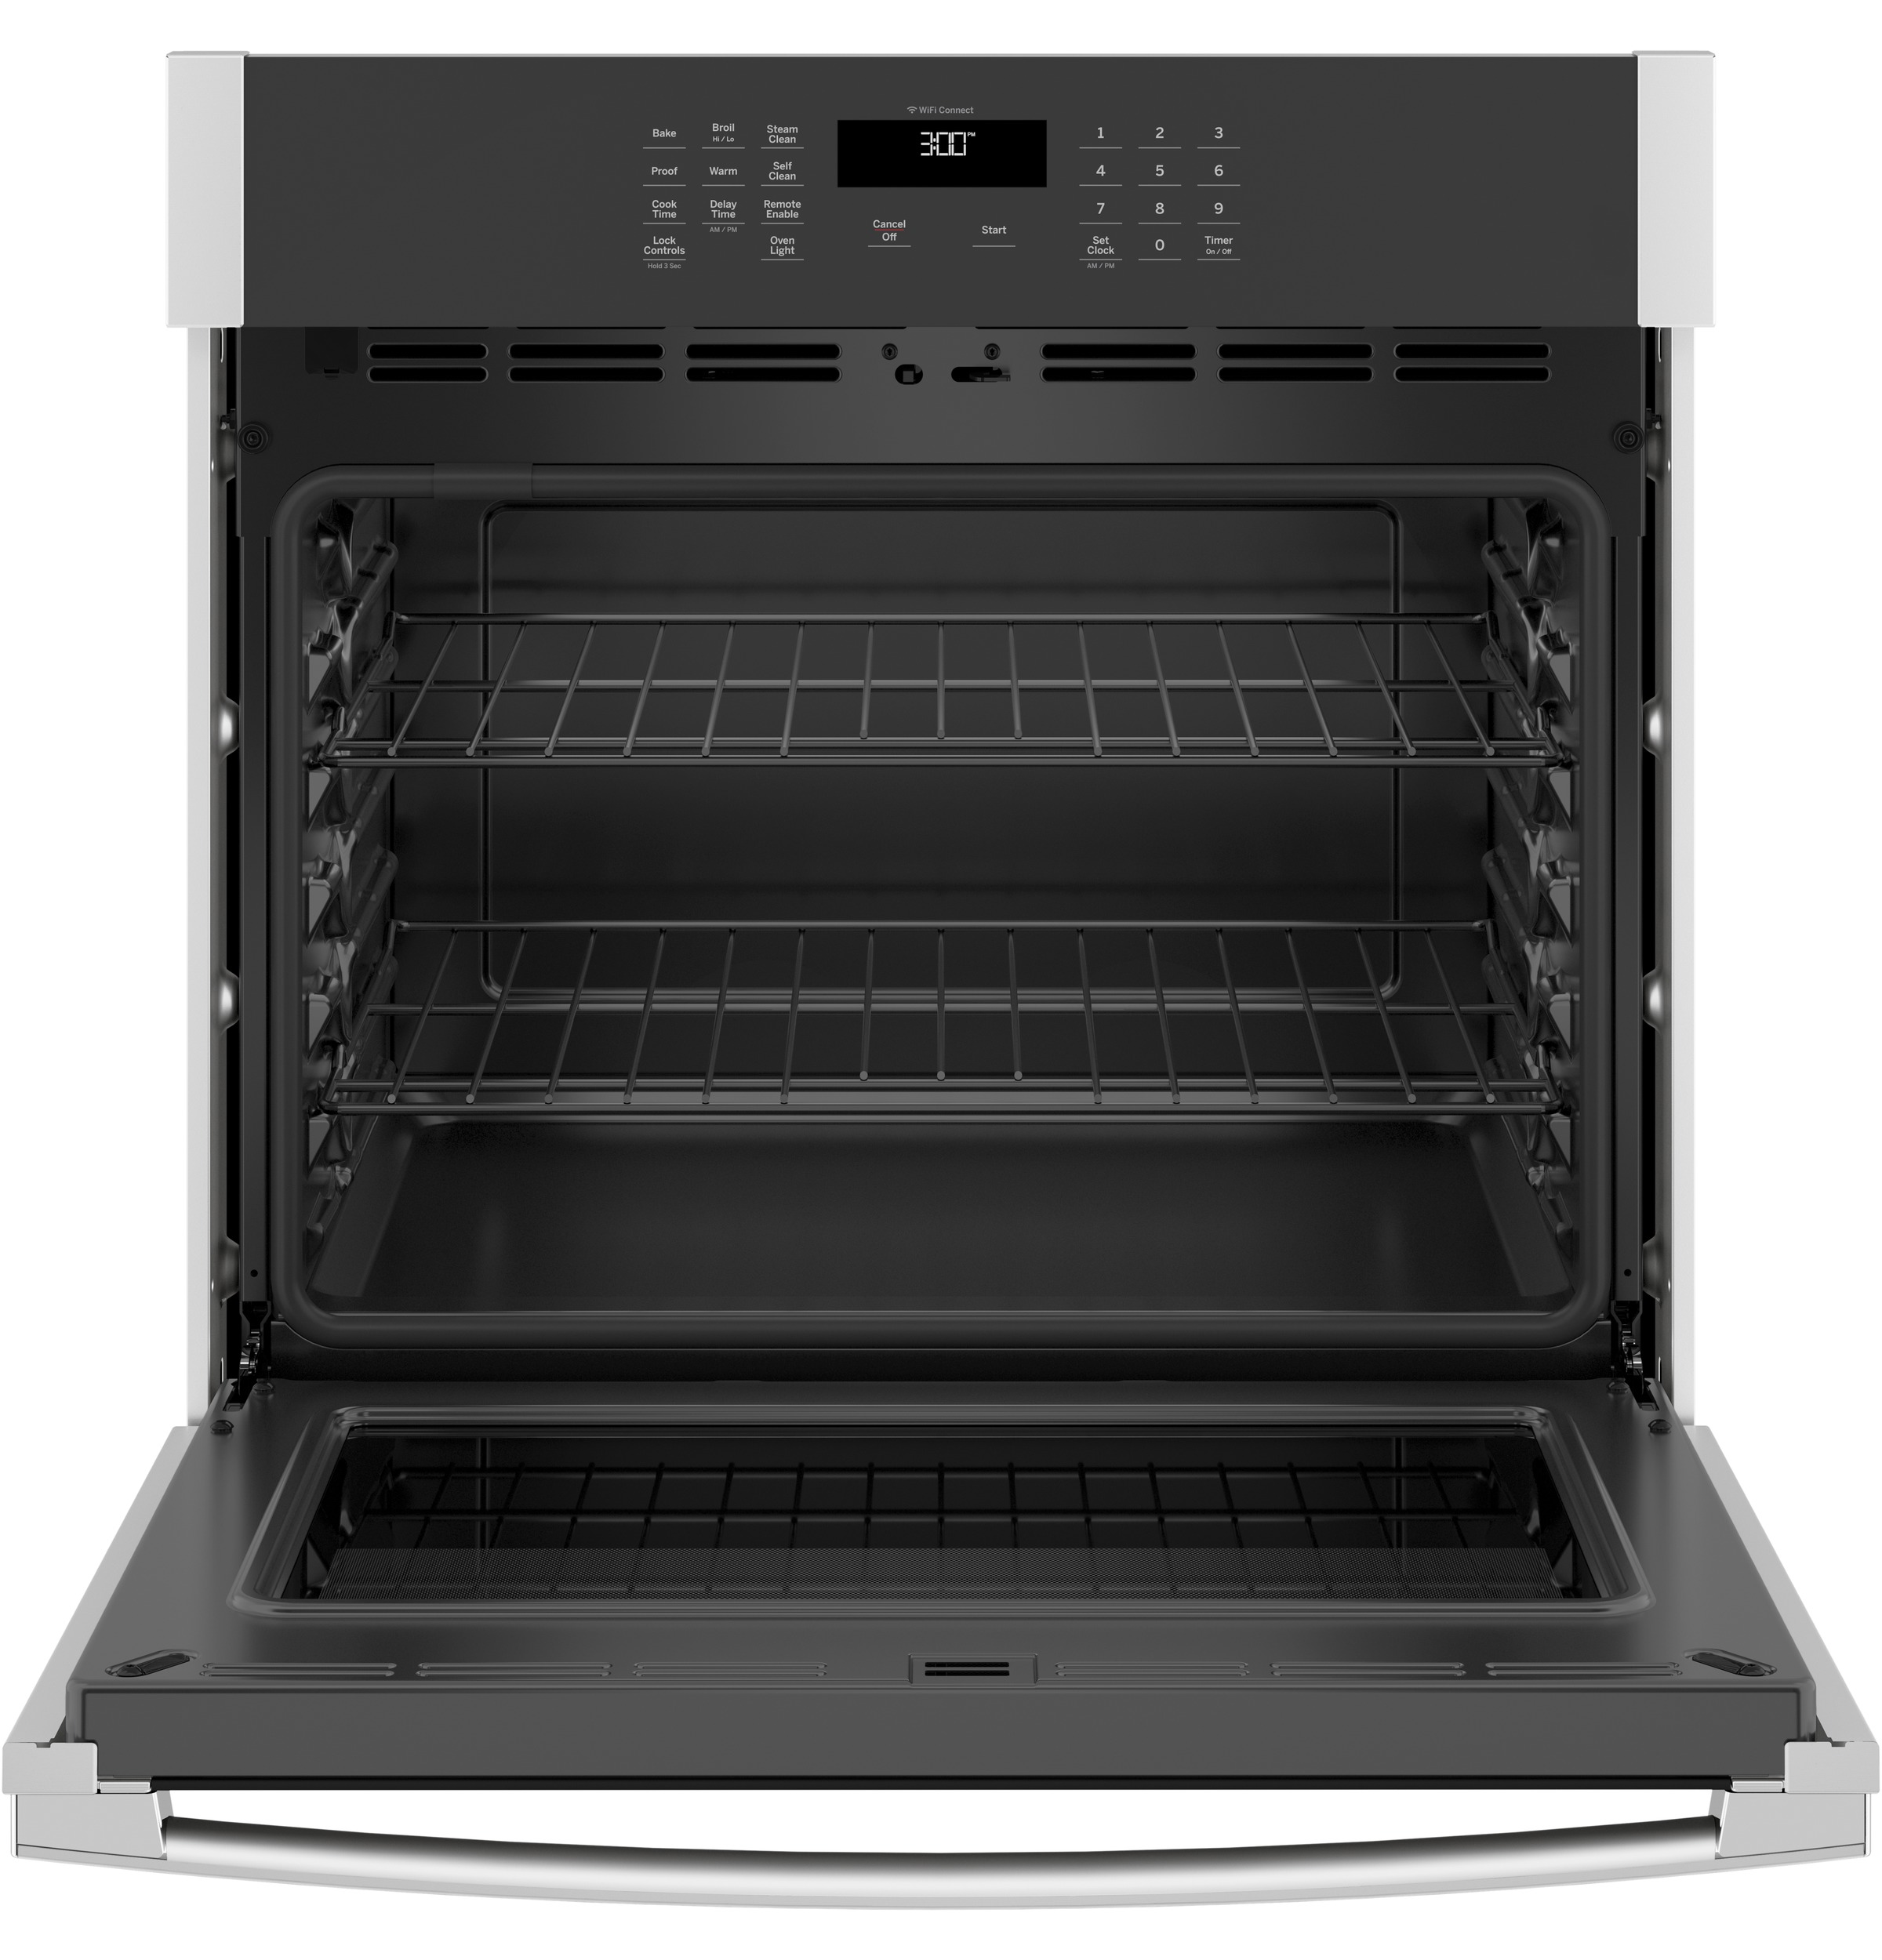 "Model: JTS3000SNSS | GE GE® 30"" Smart Built-In Self-Clean Single Wall Oven with Never-Scrub Racks"